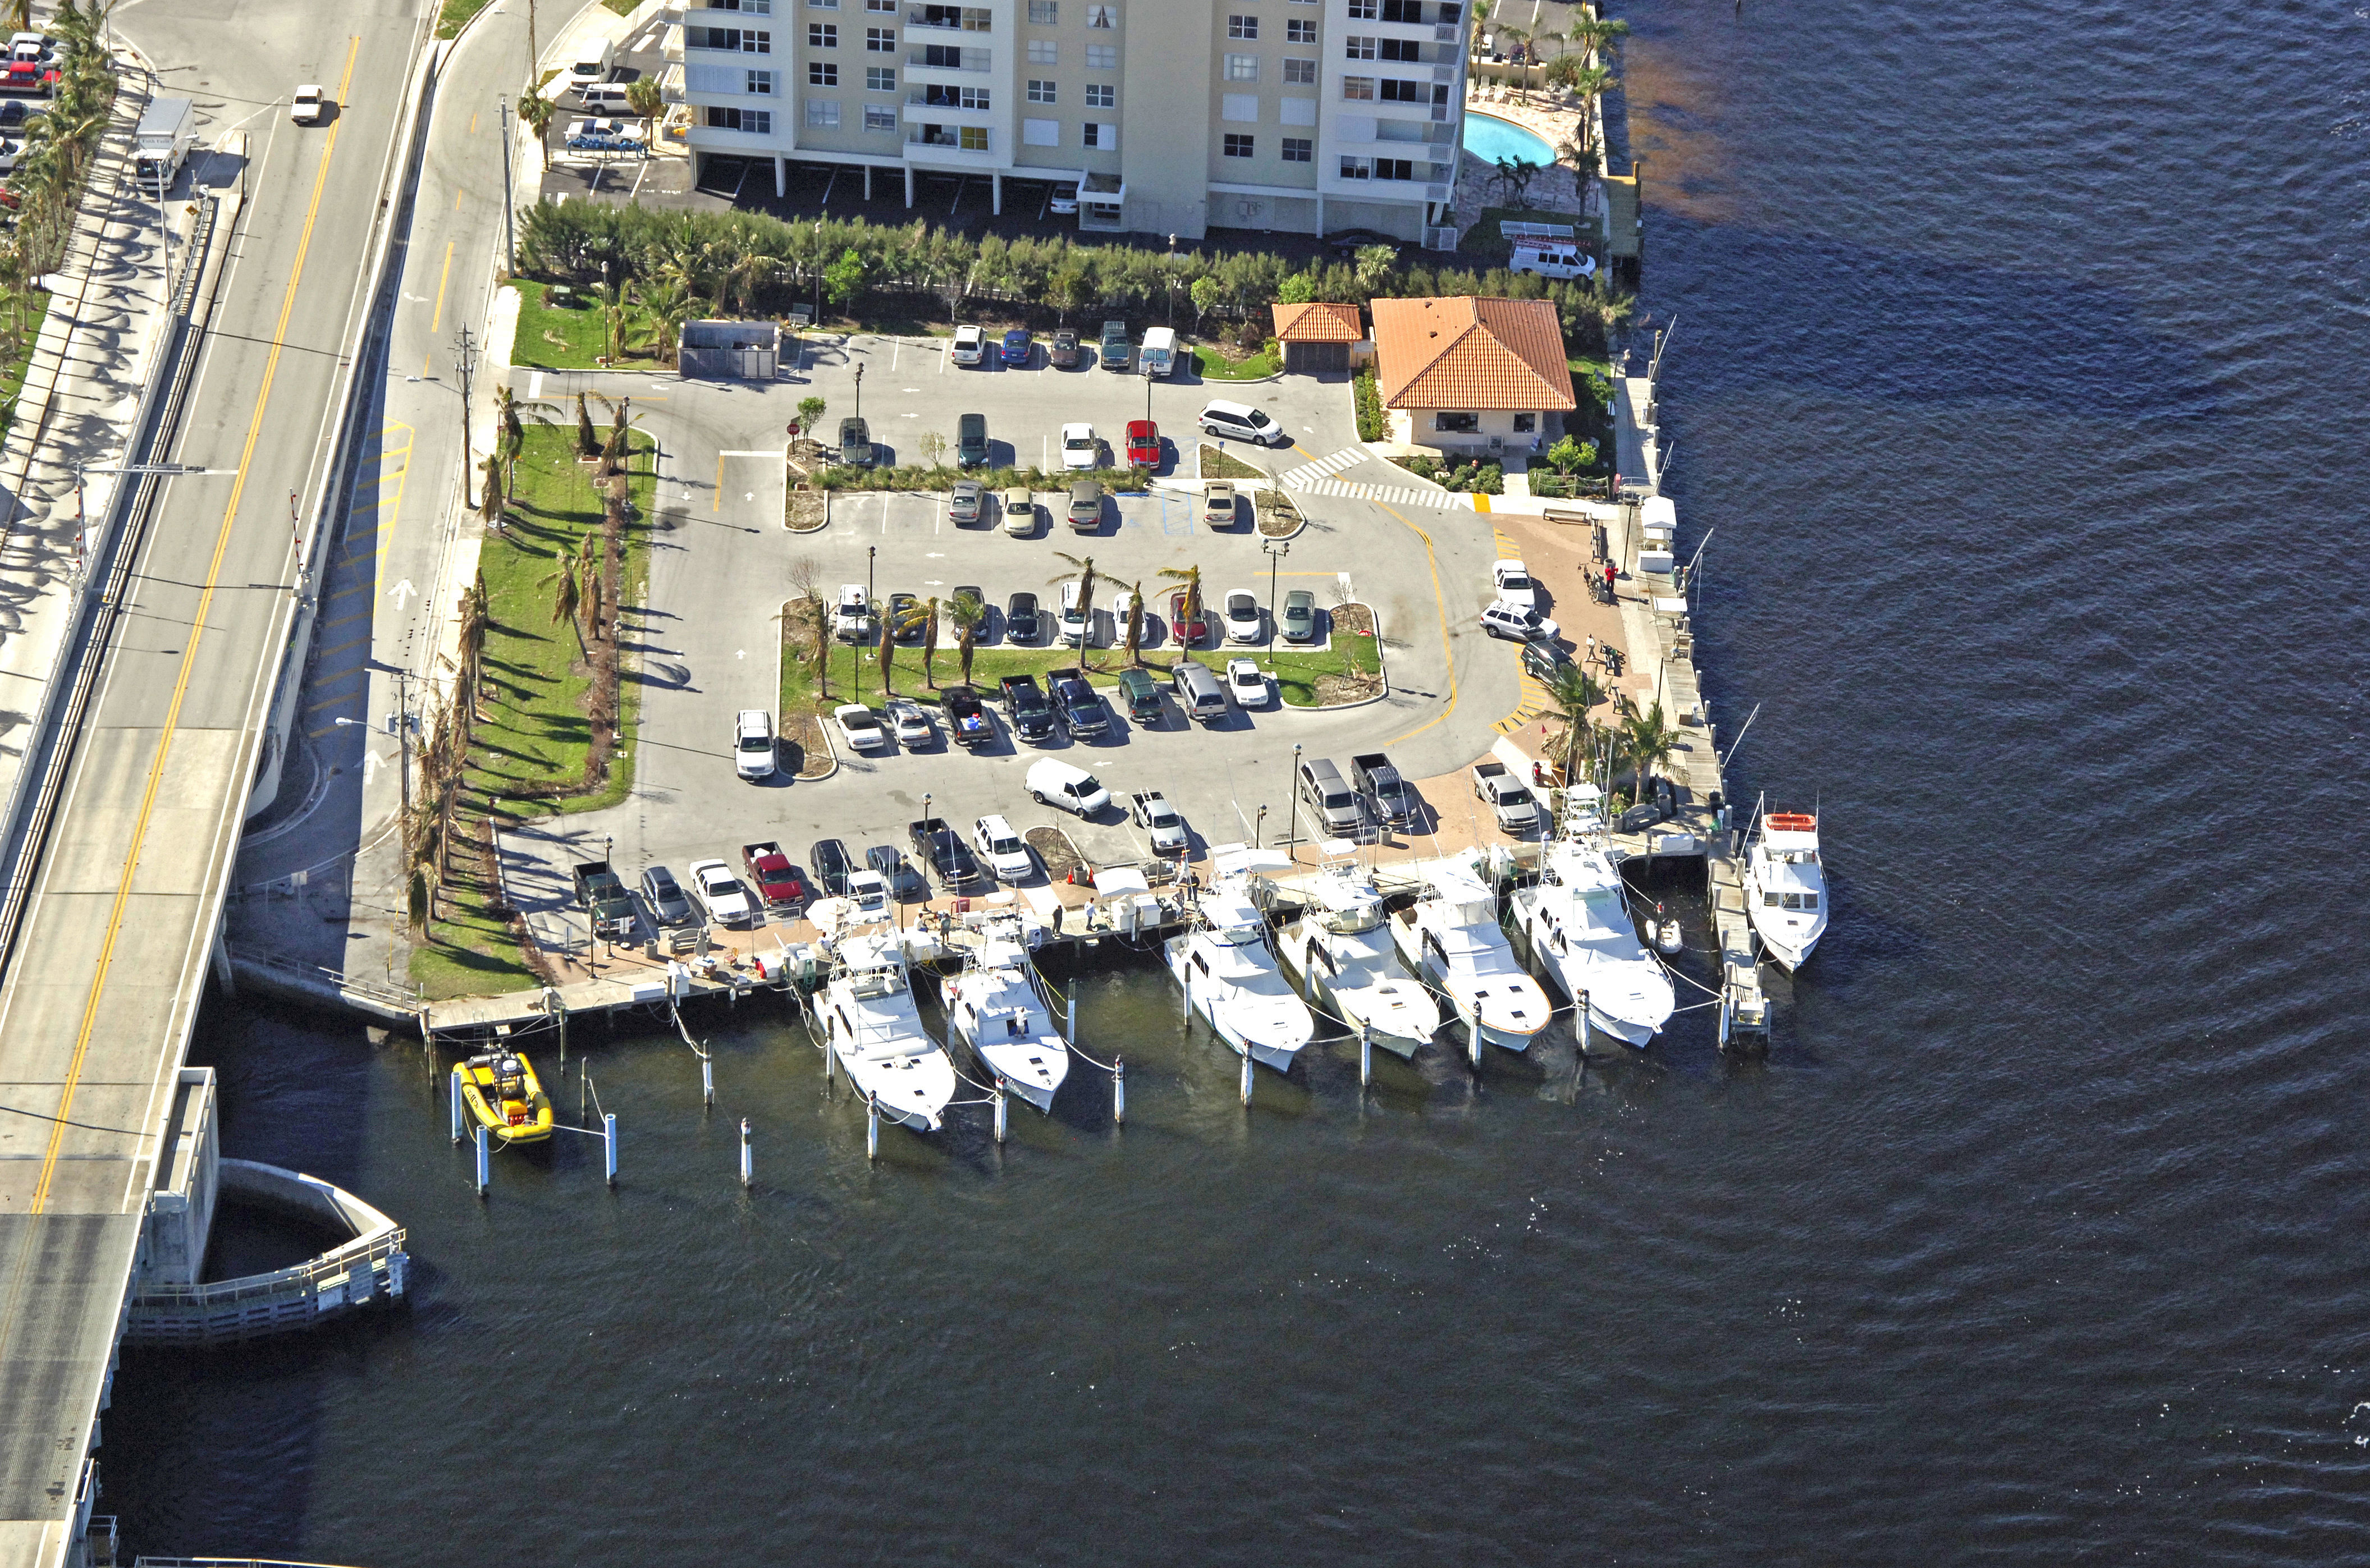 Hillsboro inlet marina private in pompano beach fl united states hillsboro inlet marina private geenschuldenfo Images